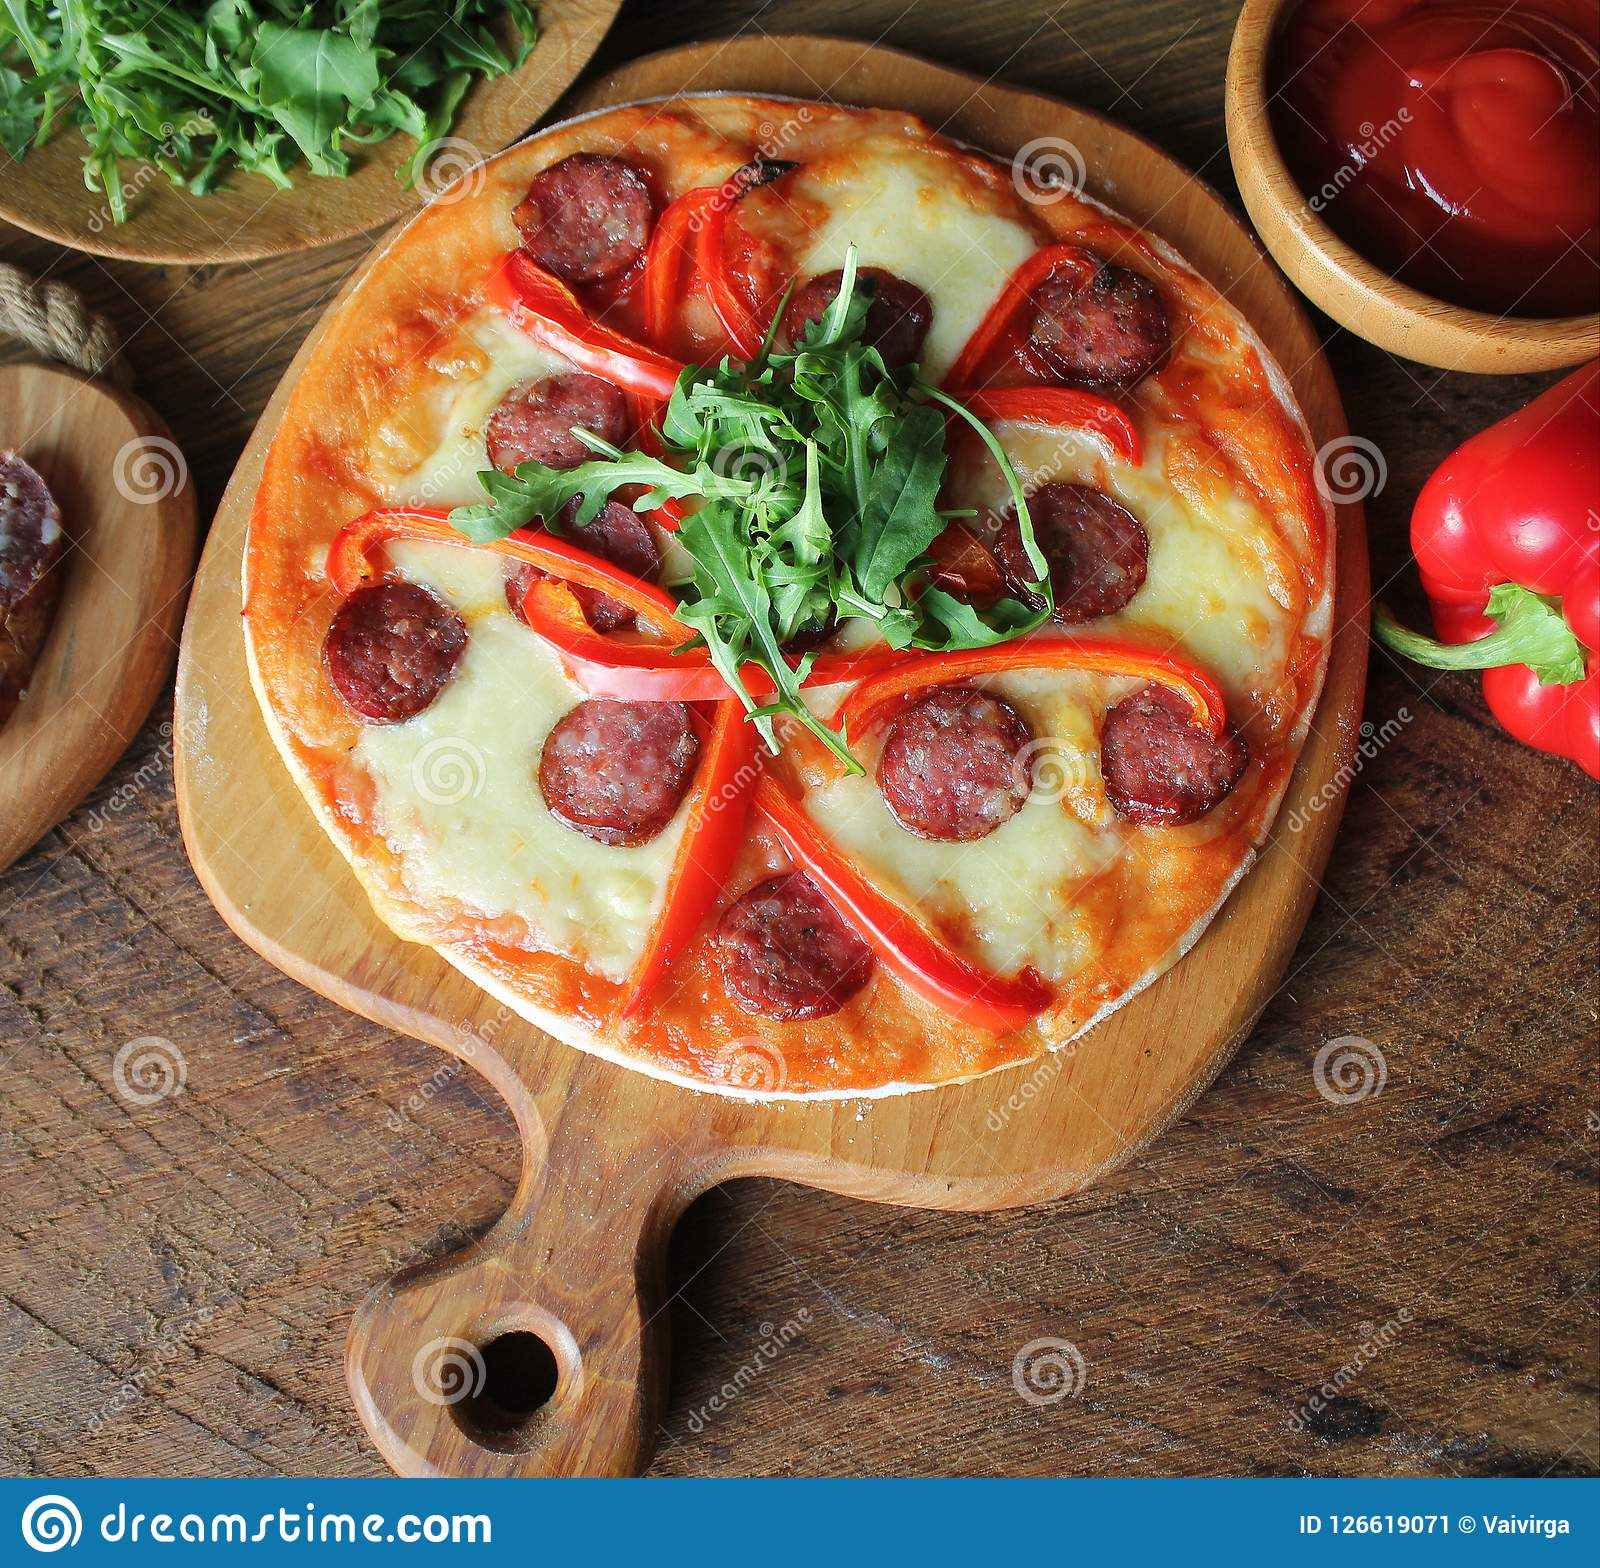 Forum on this topic: Chanterelle Mushroom and Kale Pizza, chanterelle-mushroom-and-kale-pizza/